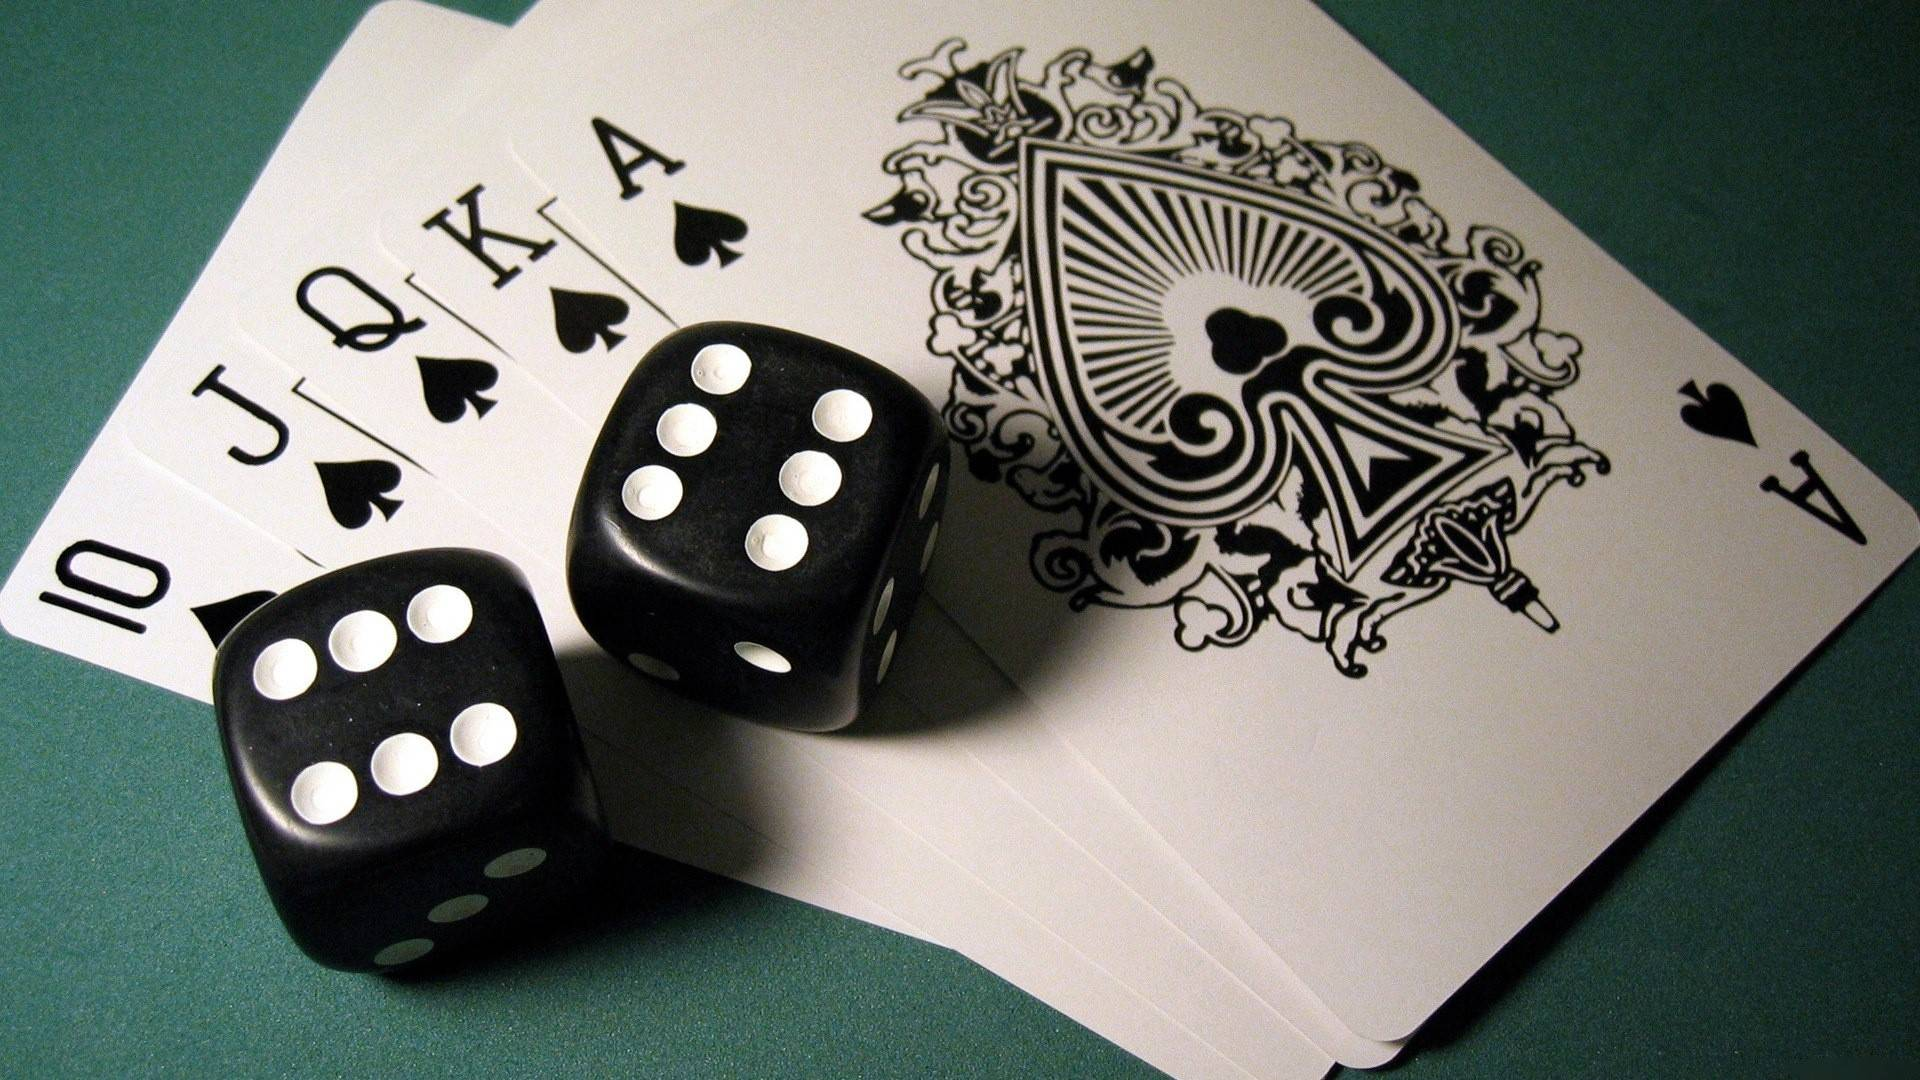 wallpaper with dice